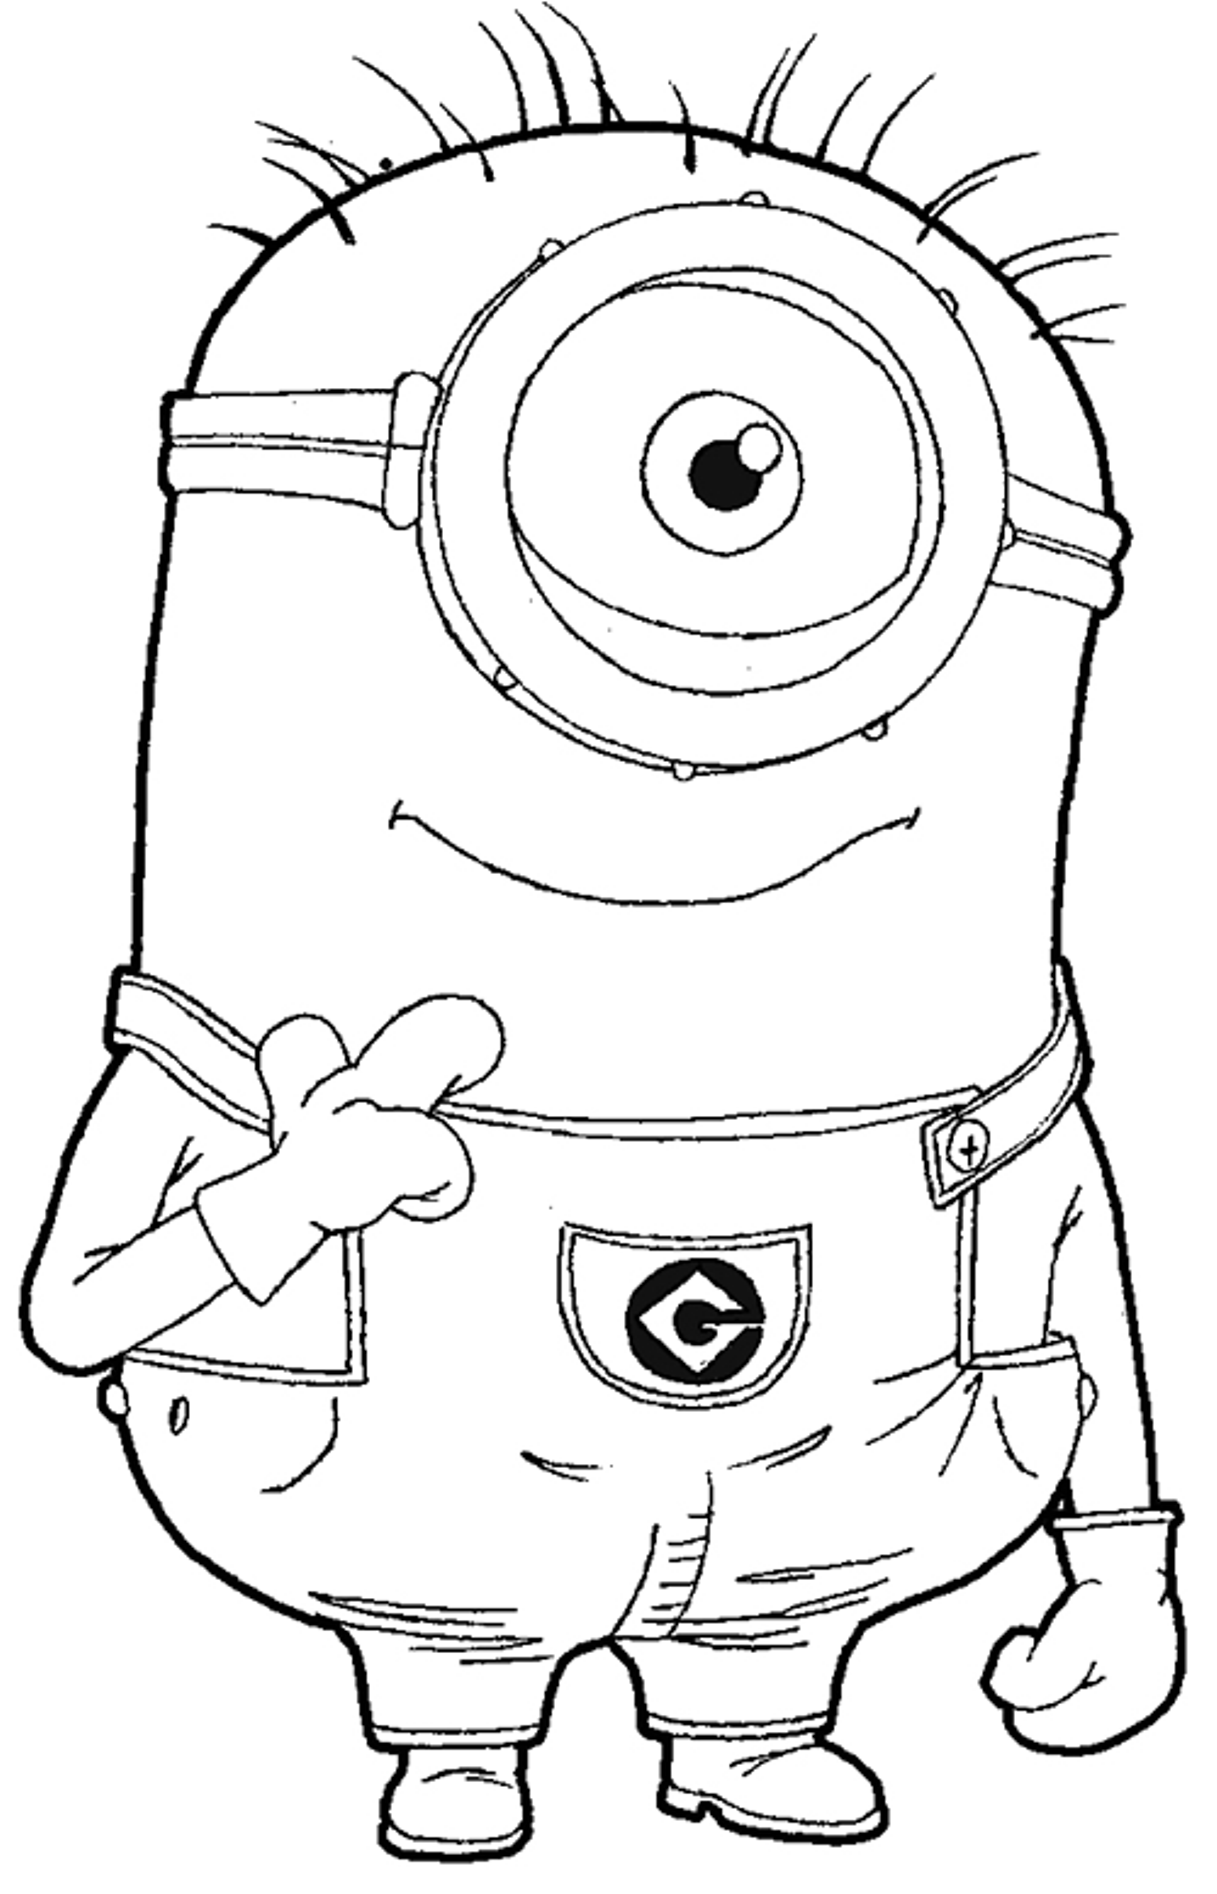 Minion Coloring Pages | Minions | Pinterest